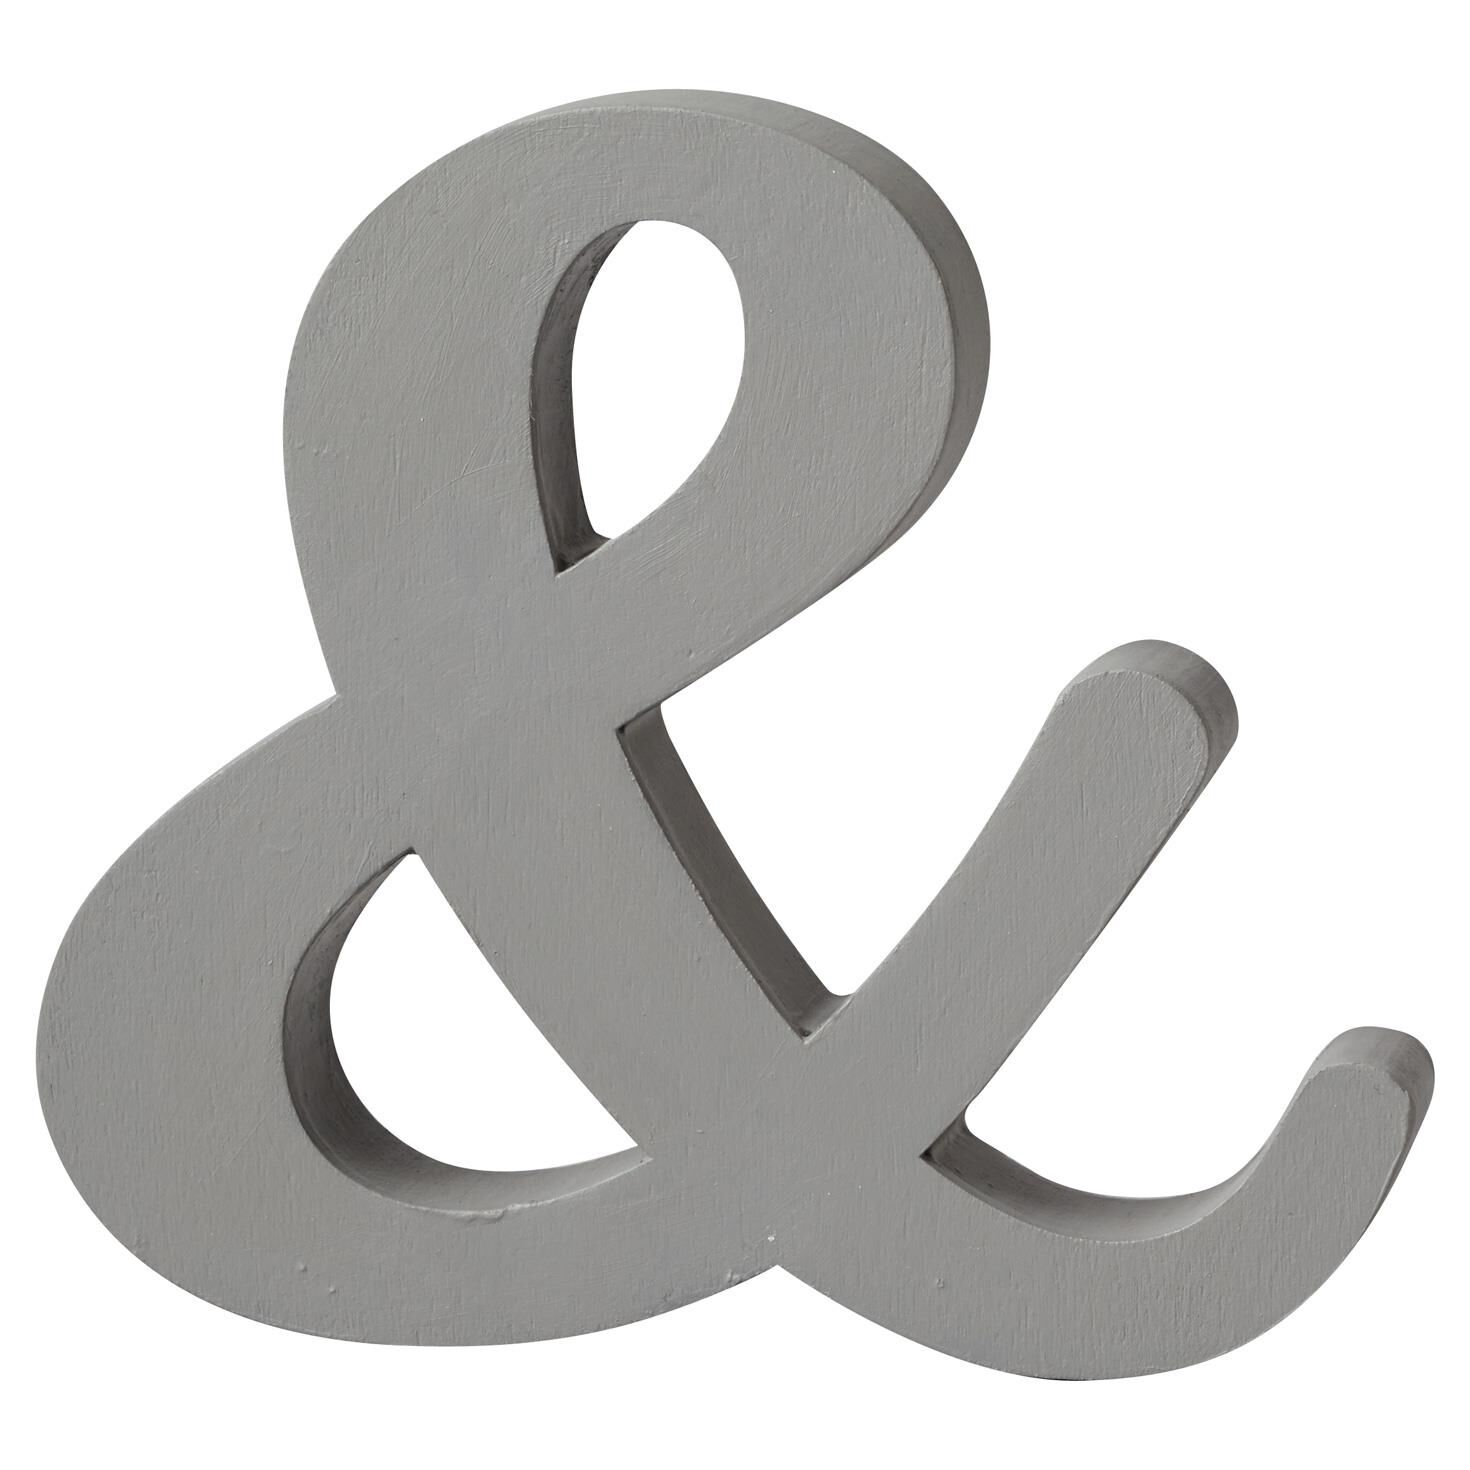 Ampersand cutout sign decor decorative accessories for Ampersand decor